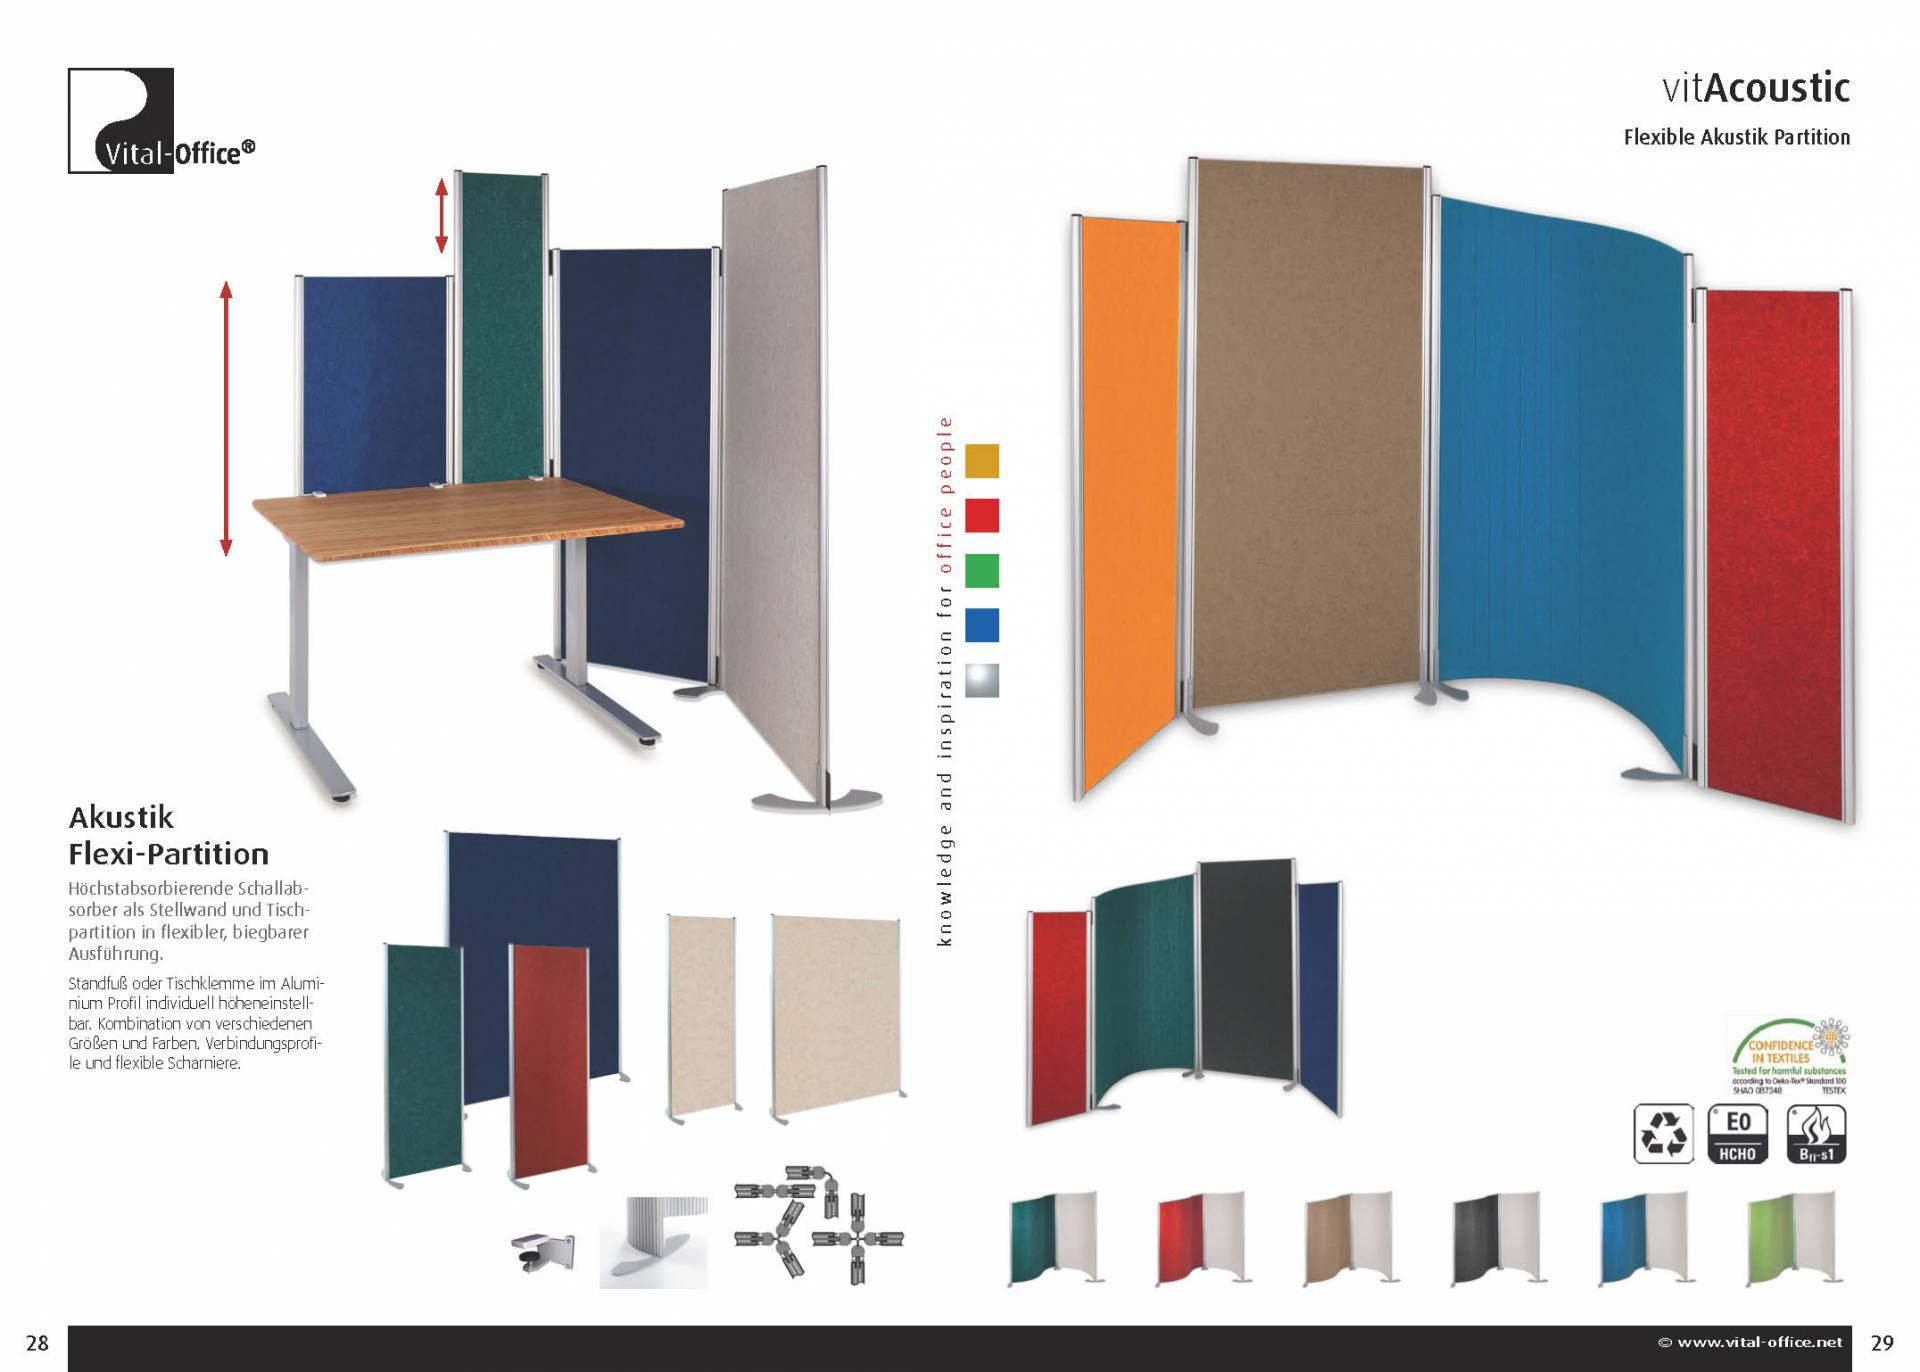 vitAcoustic acoustic partitions, sound-insulating screens and table top partitions - flexible and round